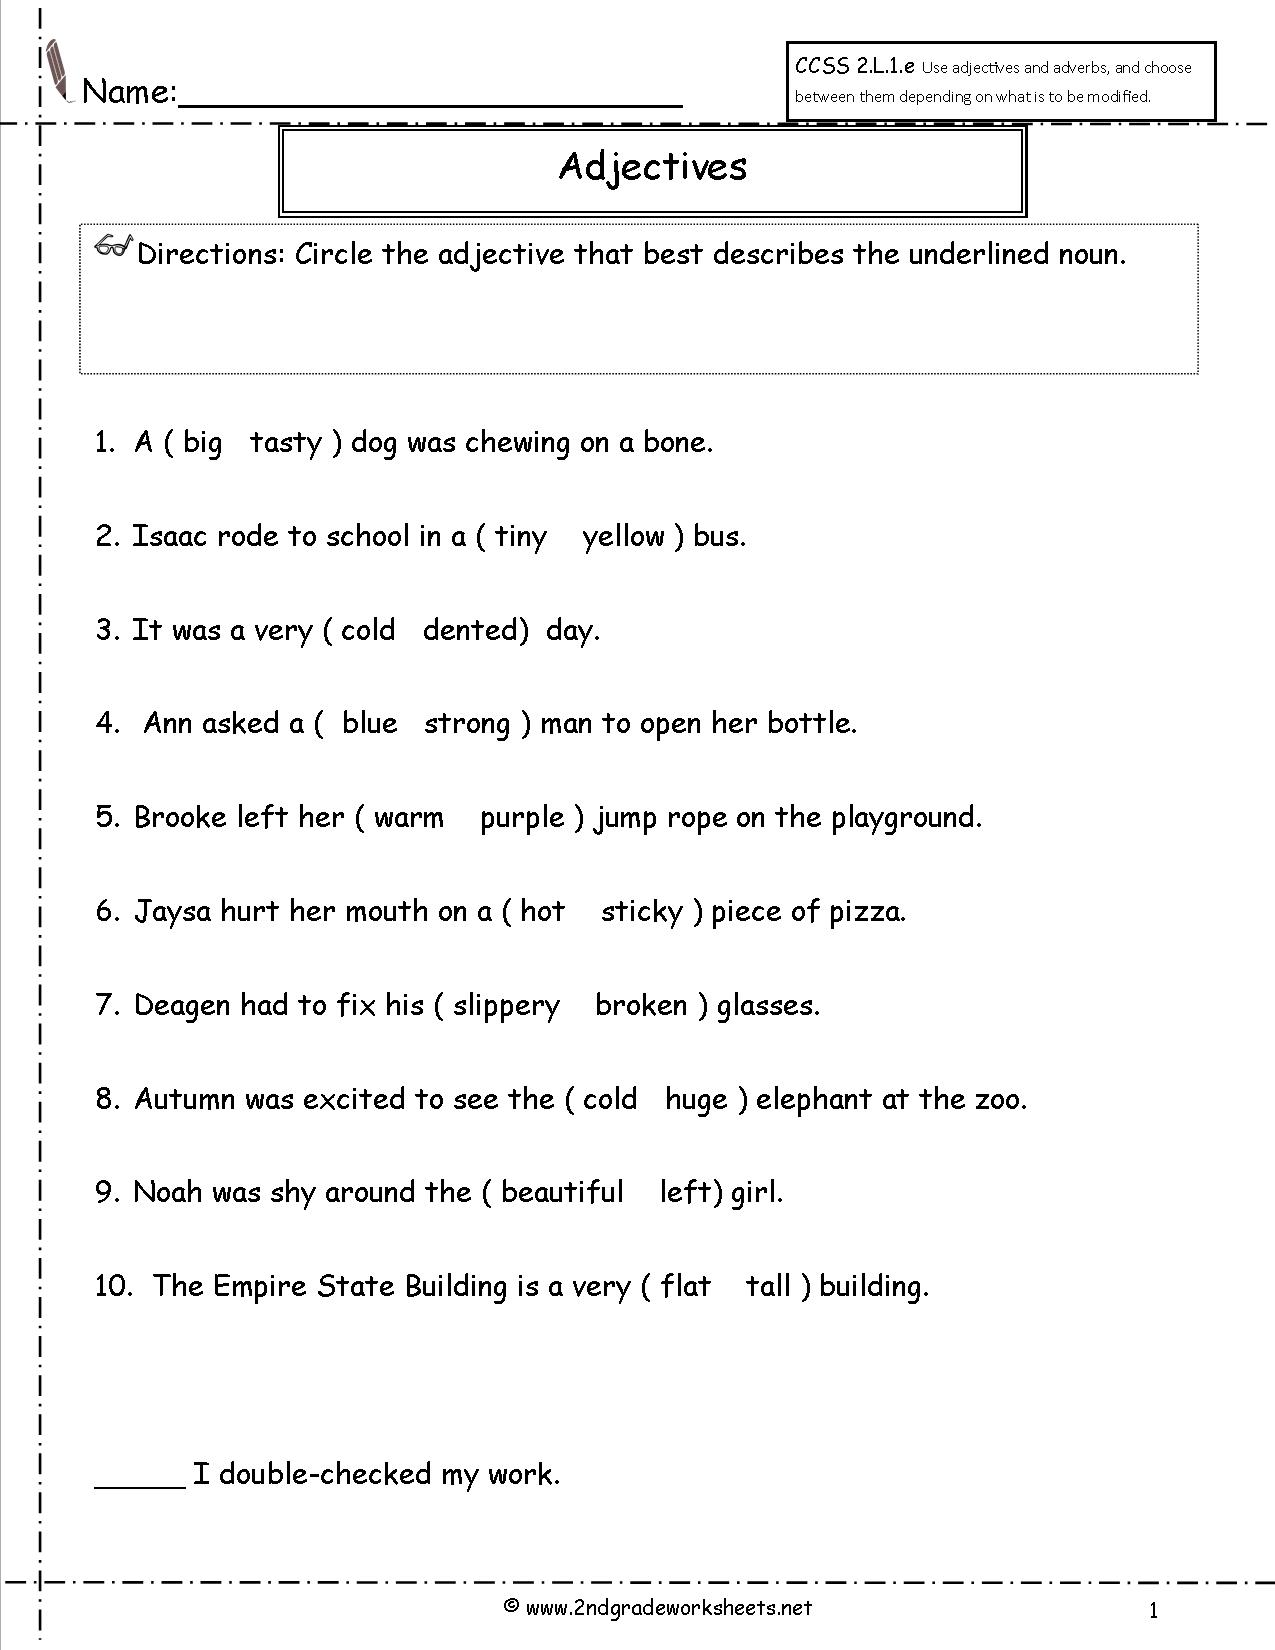 Worksheets Worksheet-adjectives free using adjectives worksheets worksheet